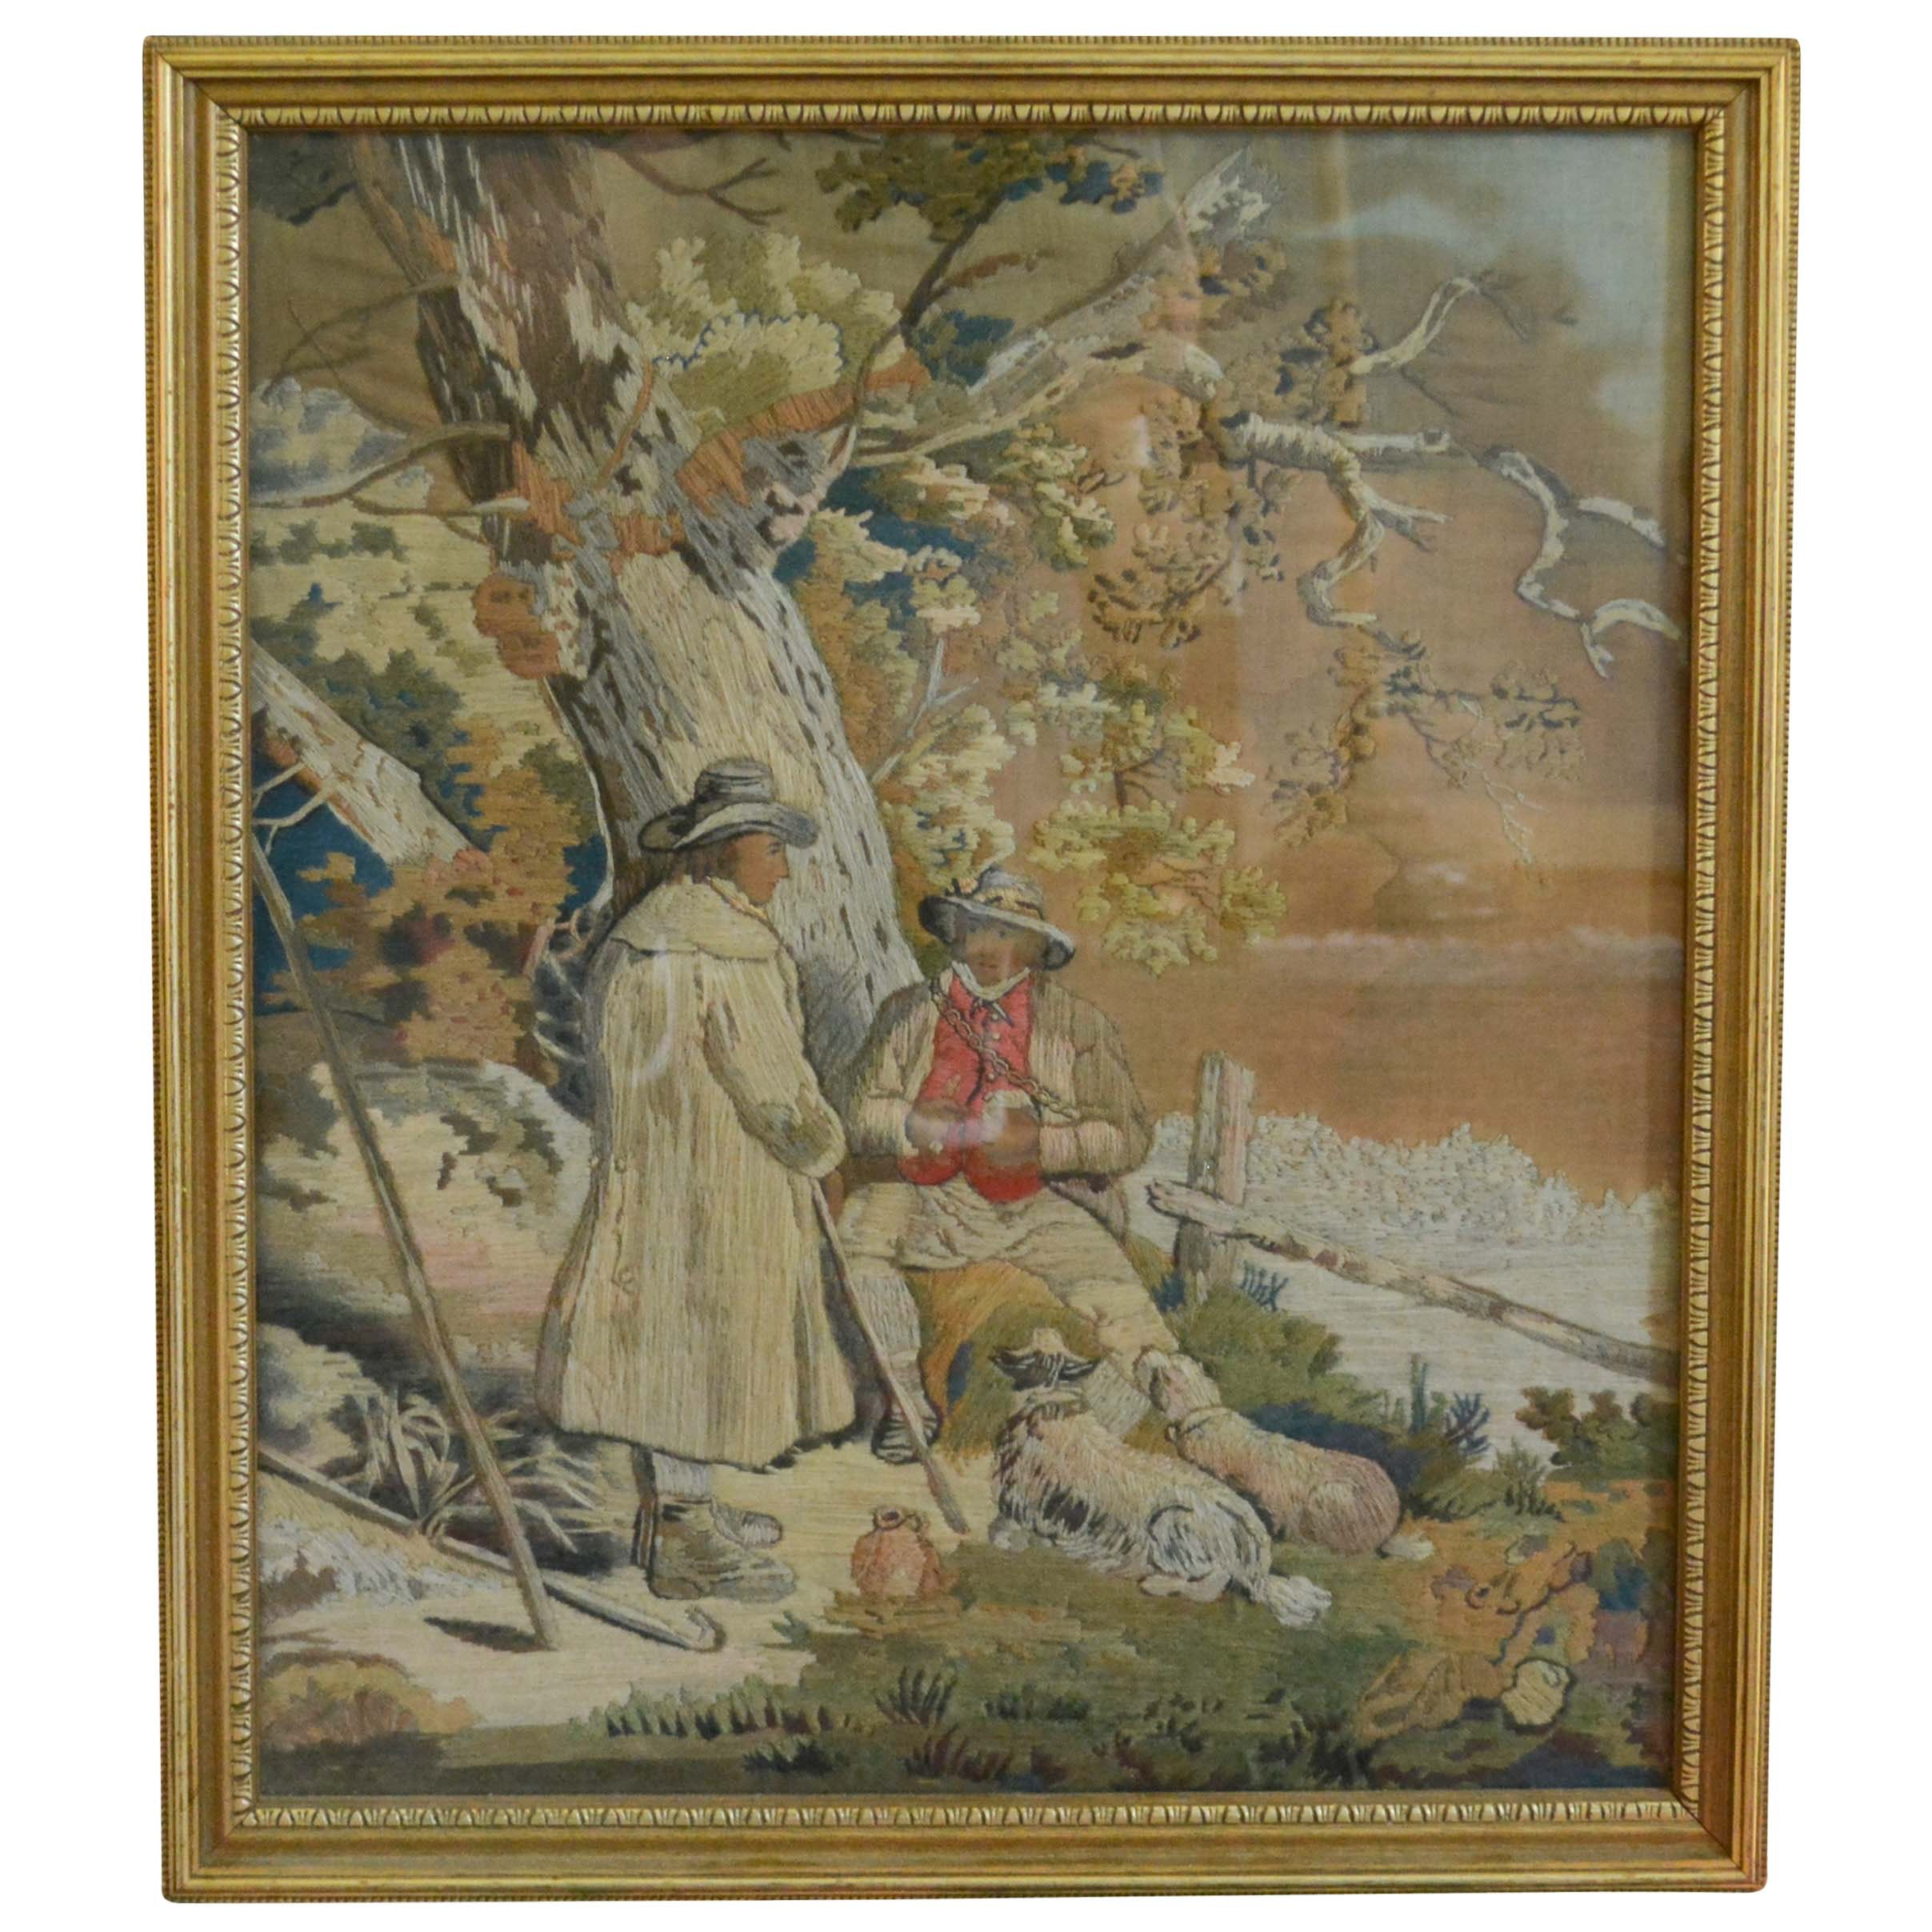 Wool Embroidery of Men Resting Under a Tree